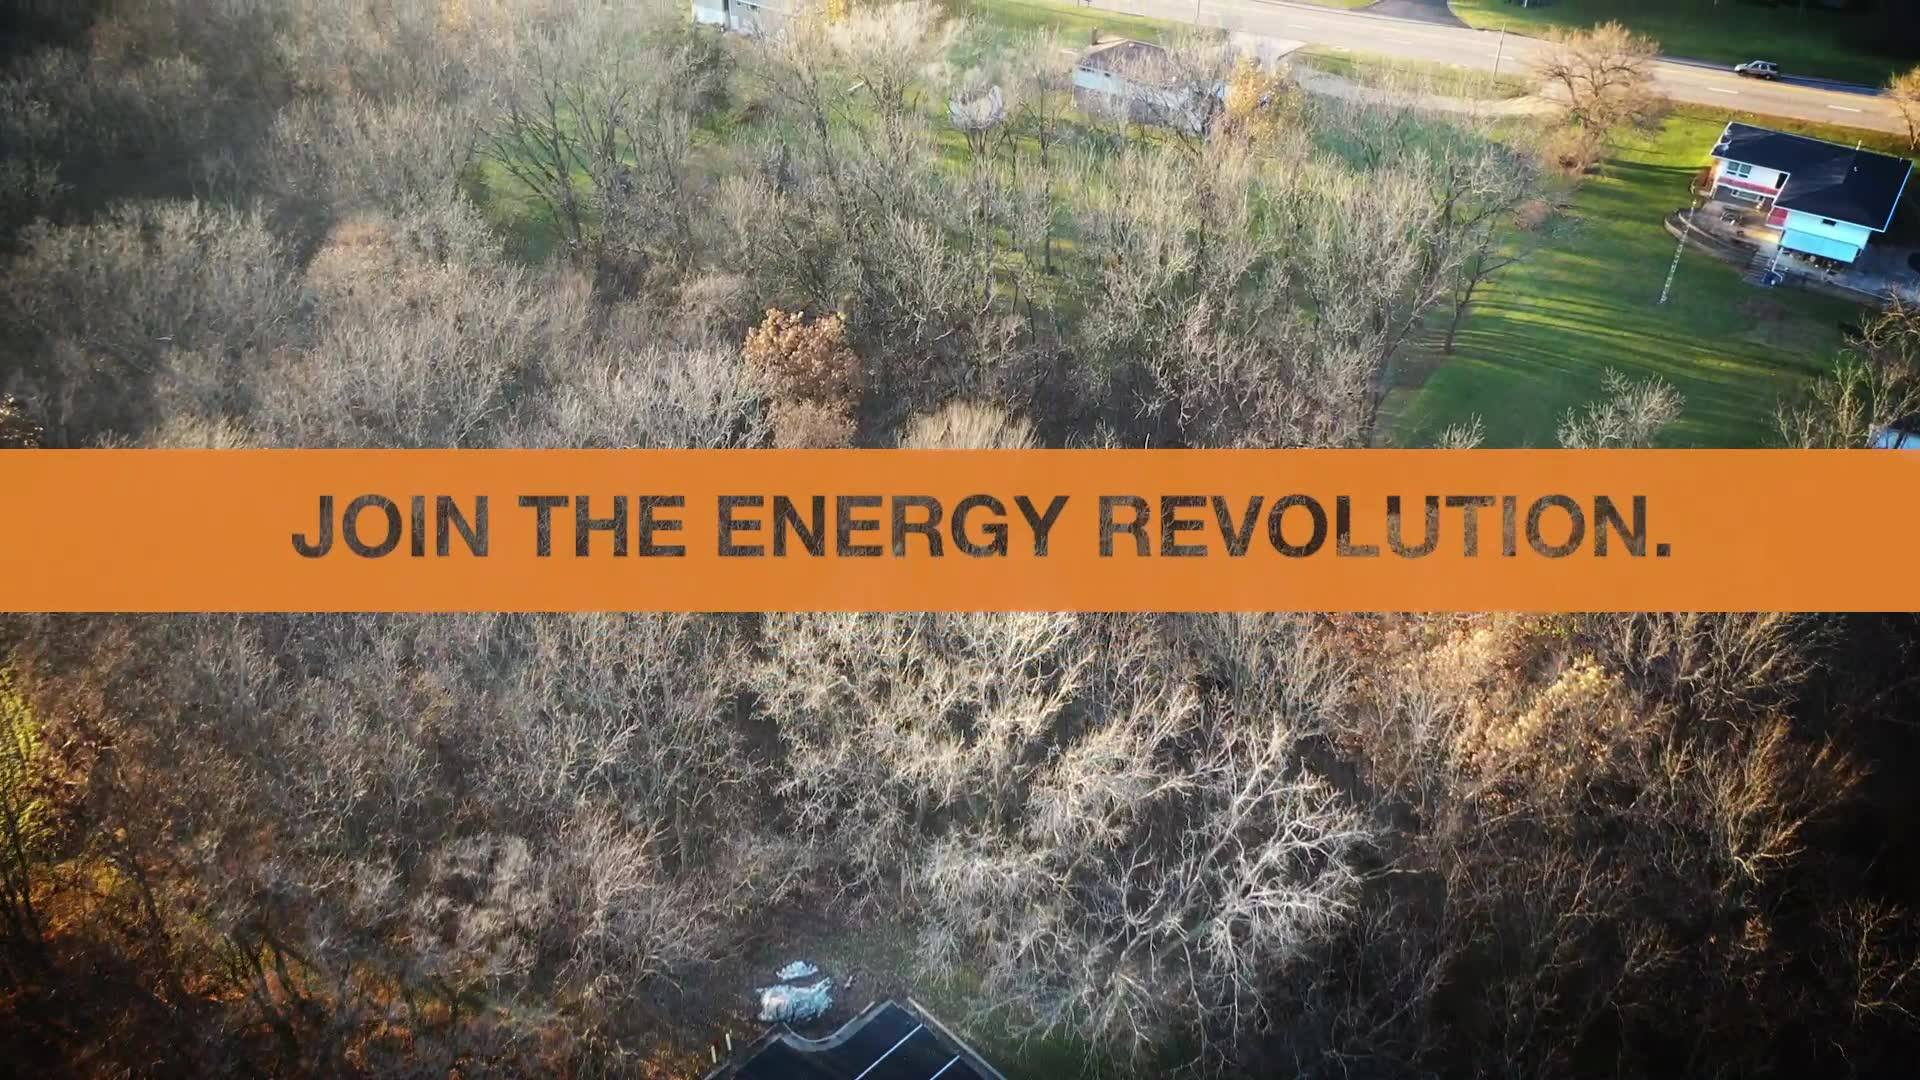 Join the Energy Revolution with Solar Power